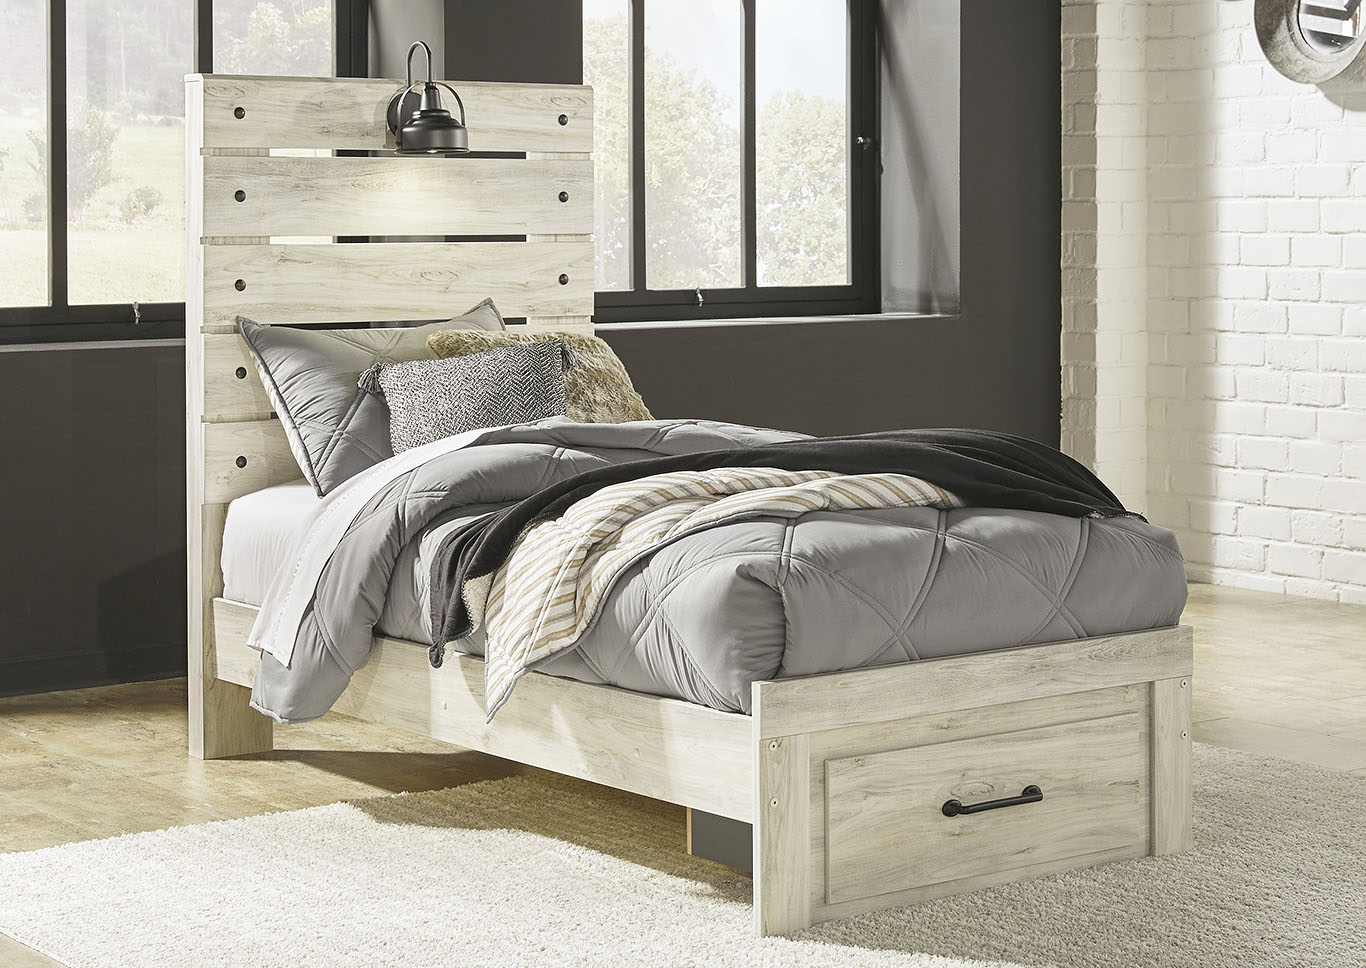 Cambeck Twin Storage Bed,Signature Design By Ashley